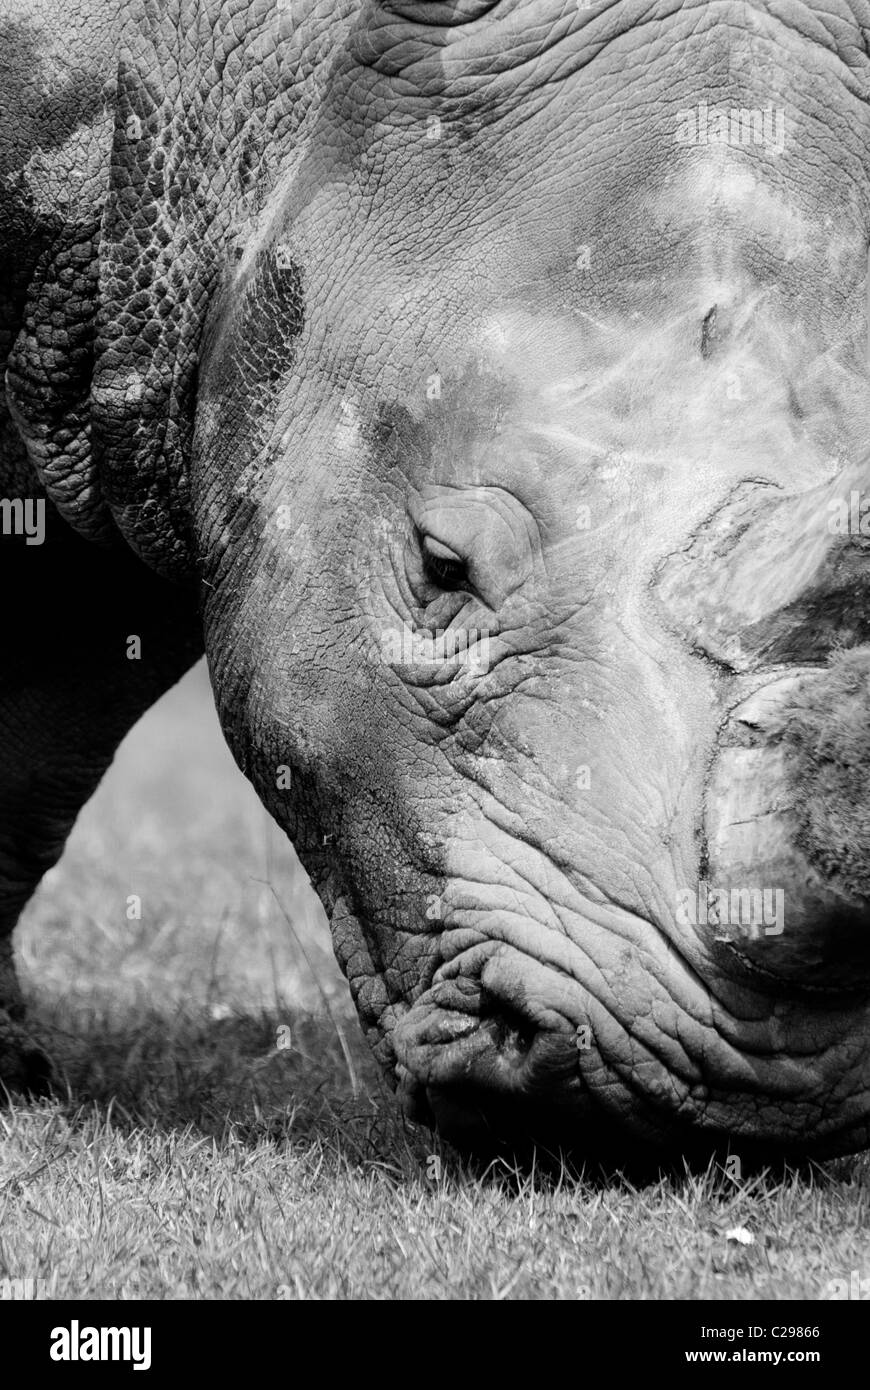 A black and white image of a Rhinoceros eating some grass - Stock Image